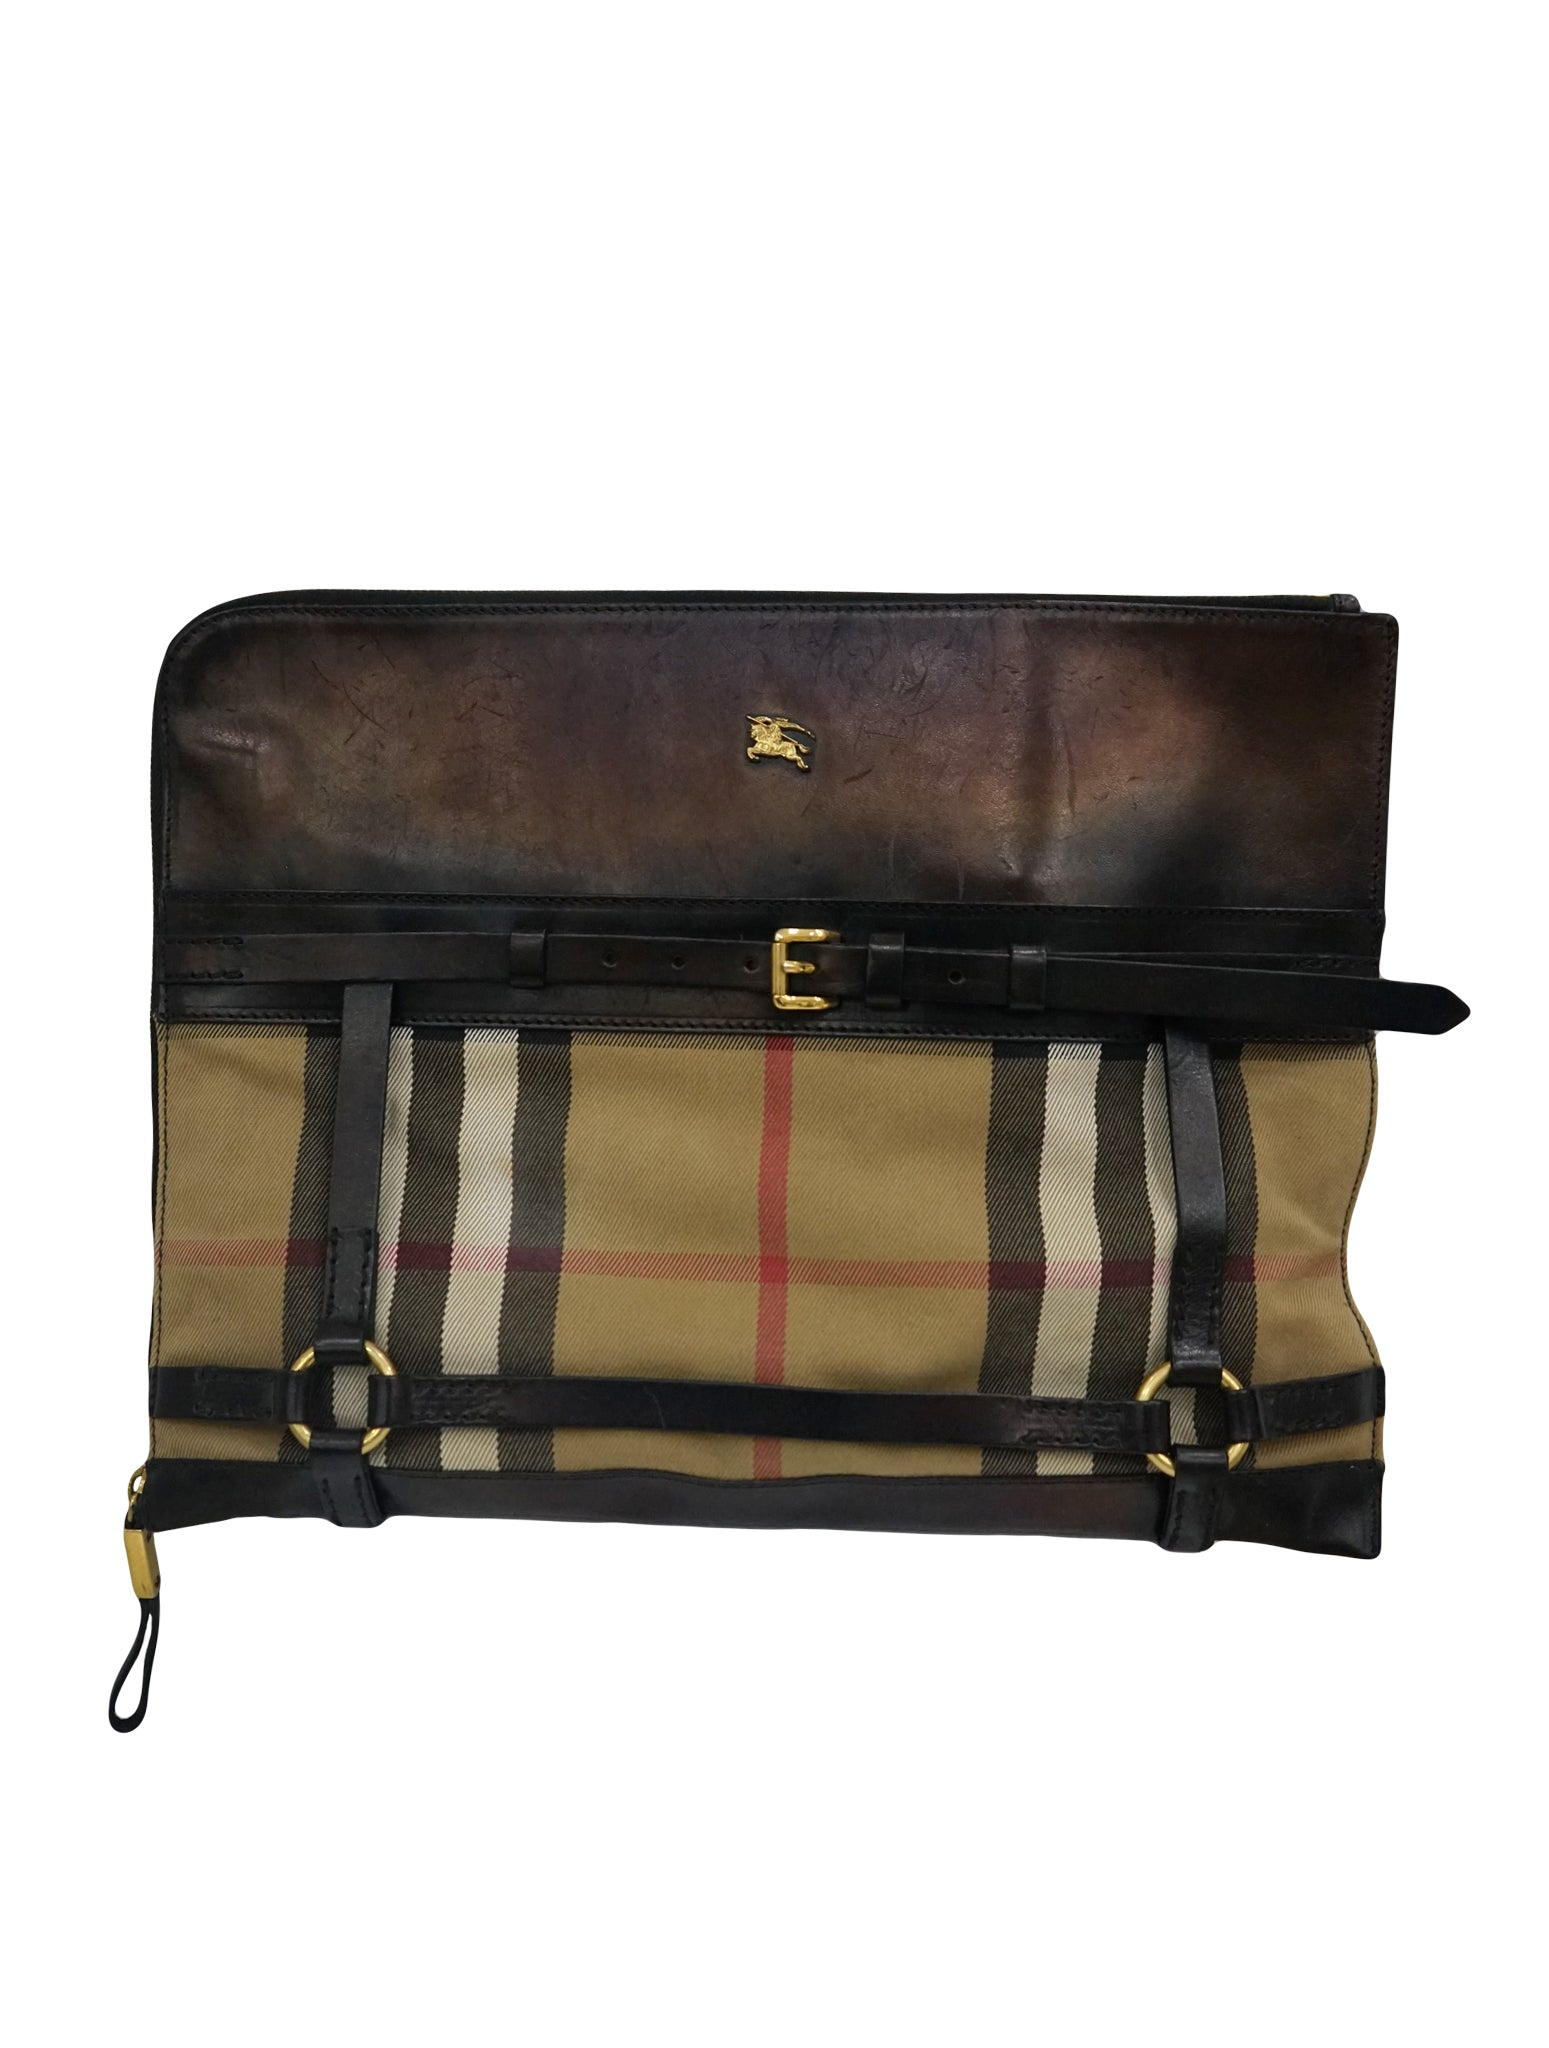 FABRIC & LEATHER BRIDLE DOCUMENT CASE